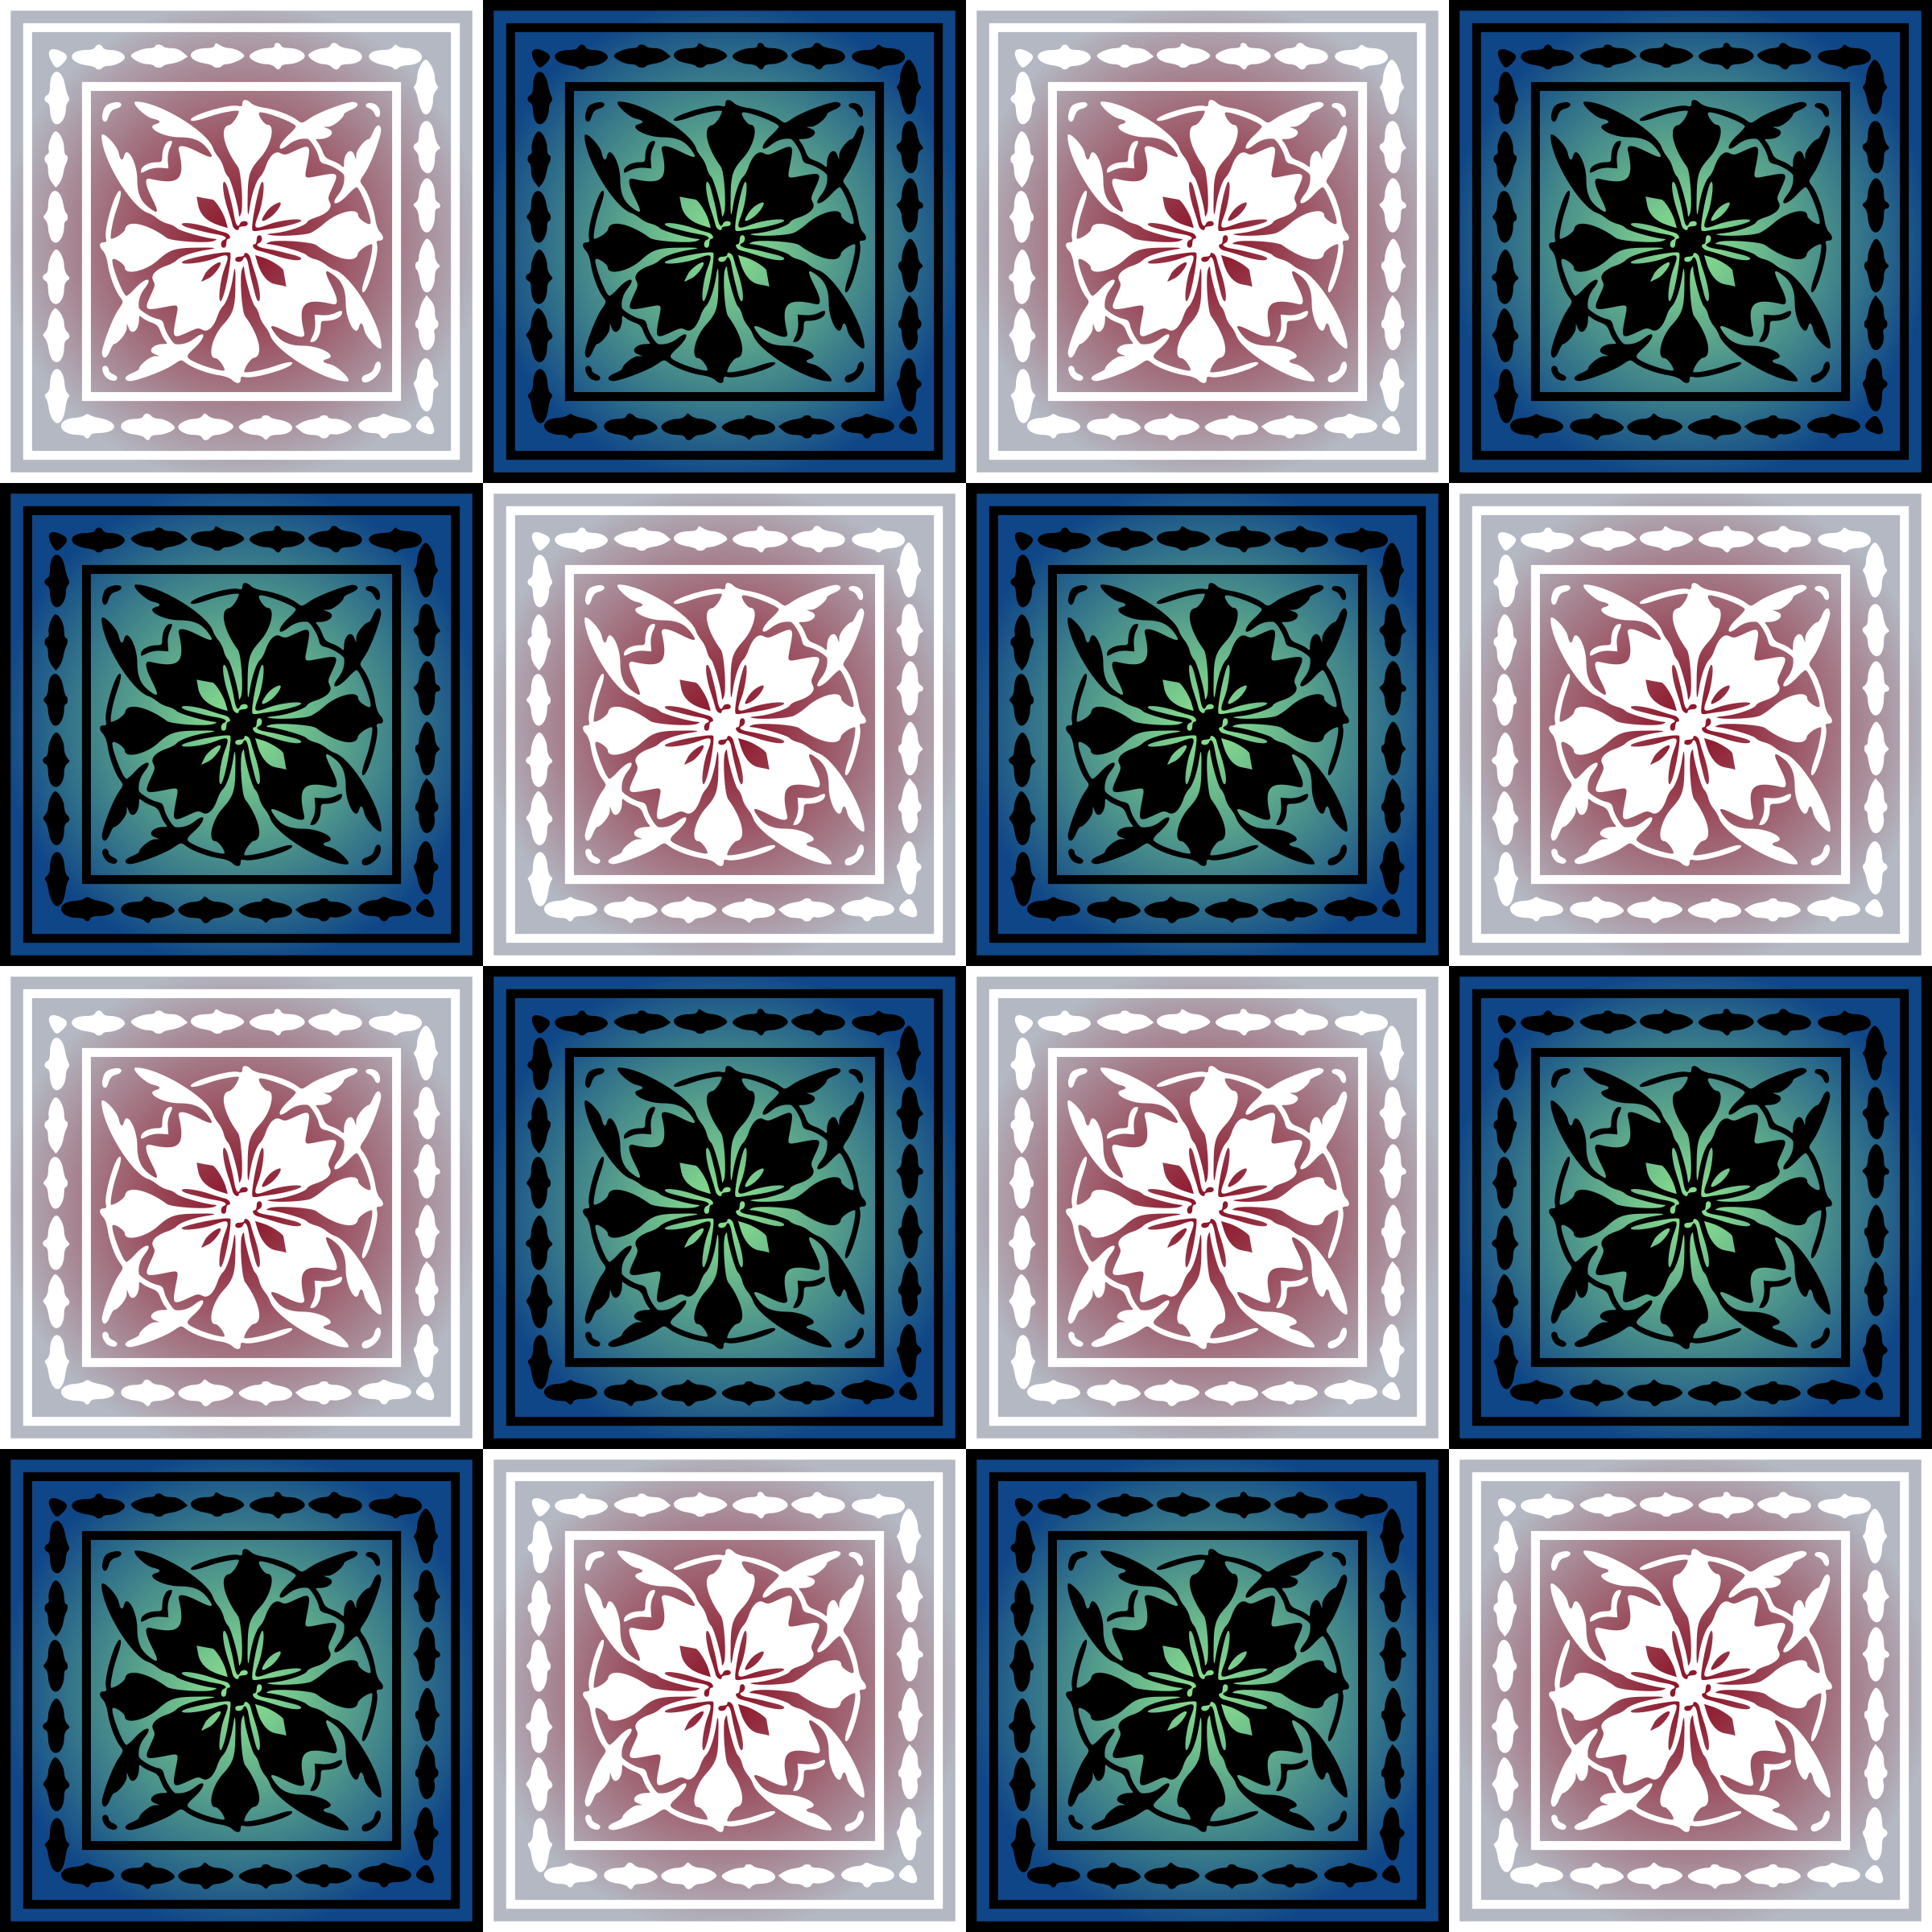 Background pattern 124 (colour 2) by Firkin